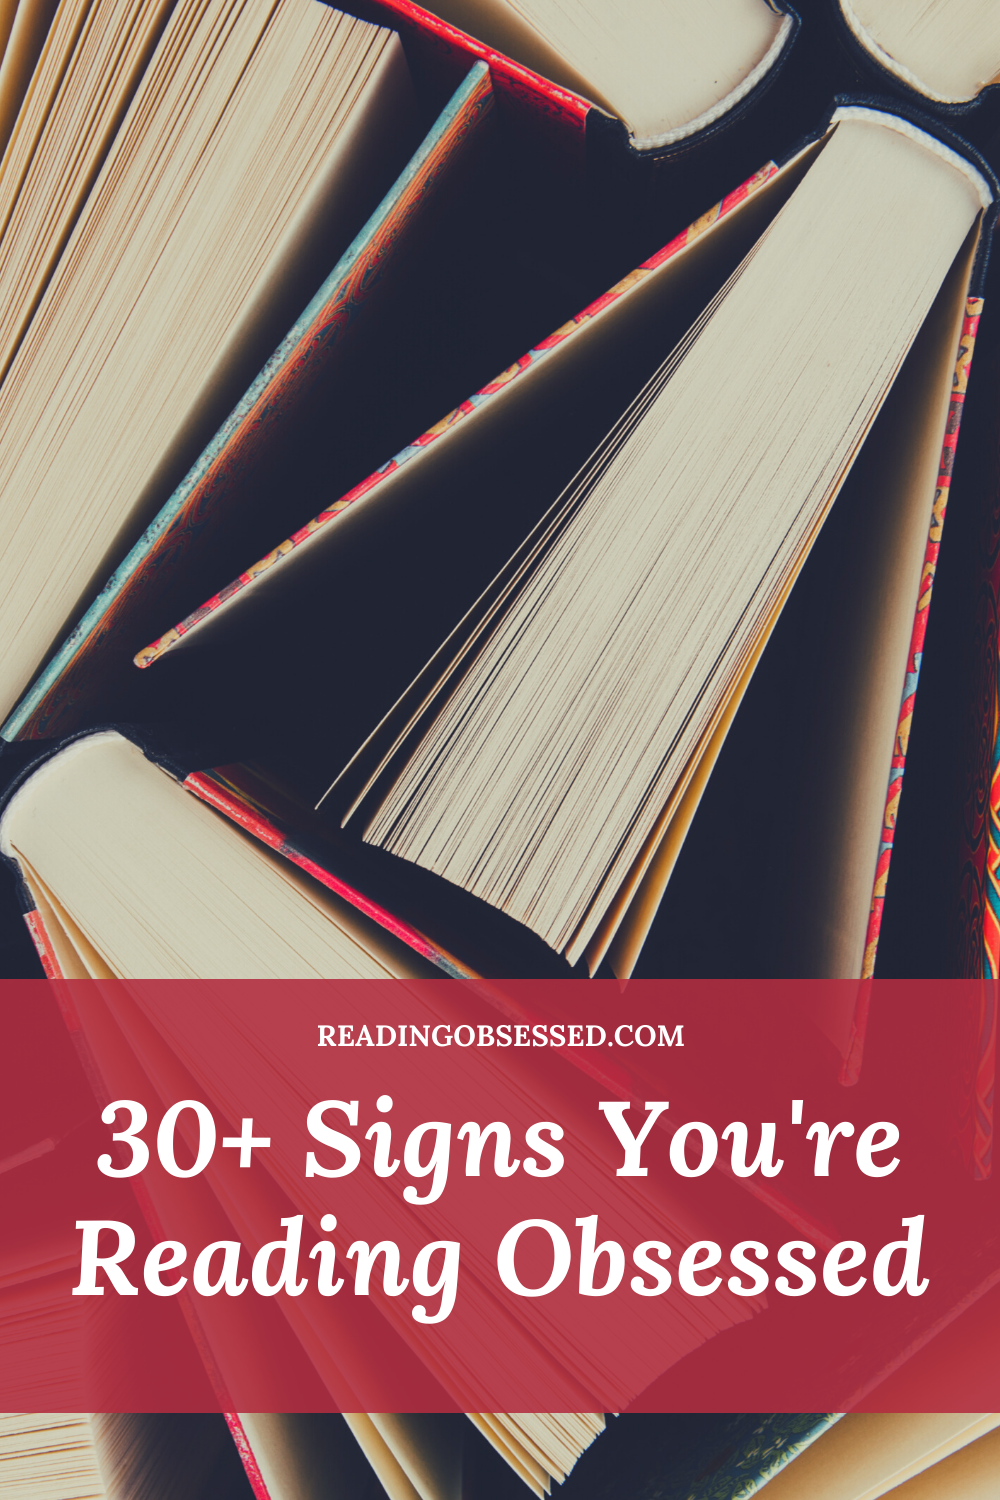 Signs You're Reading Obsessed